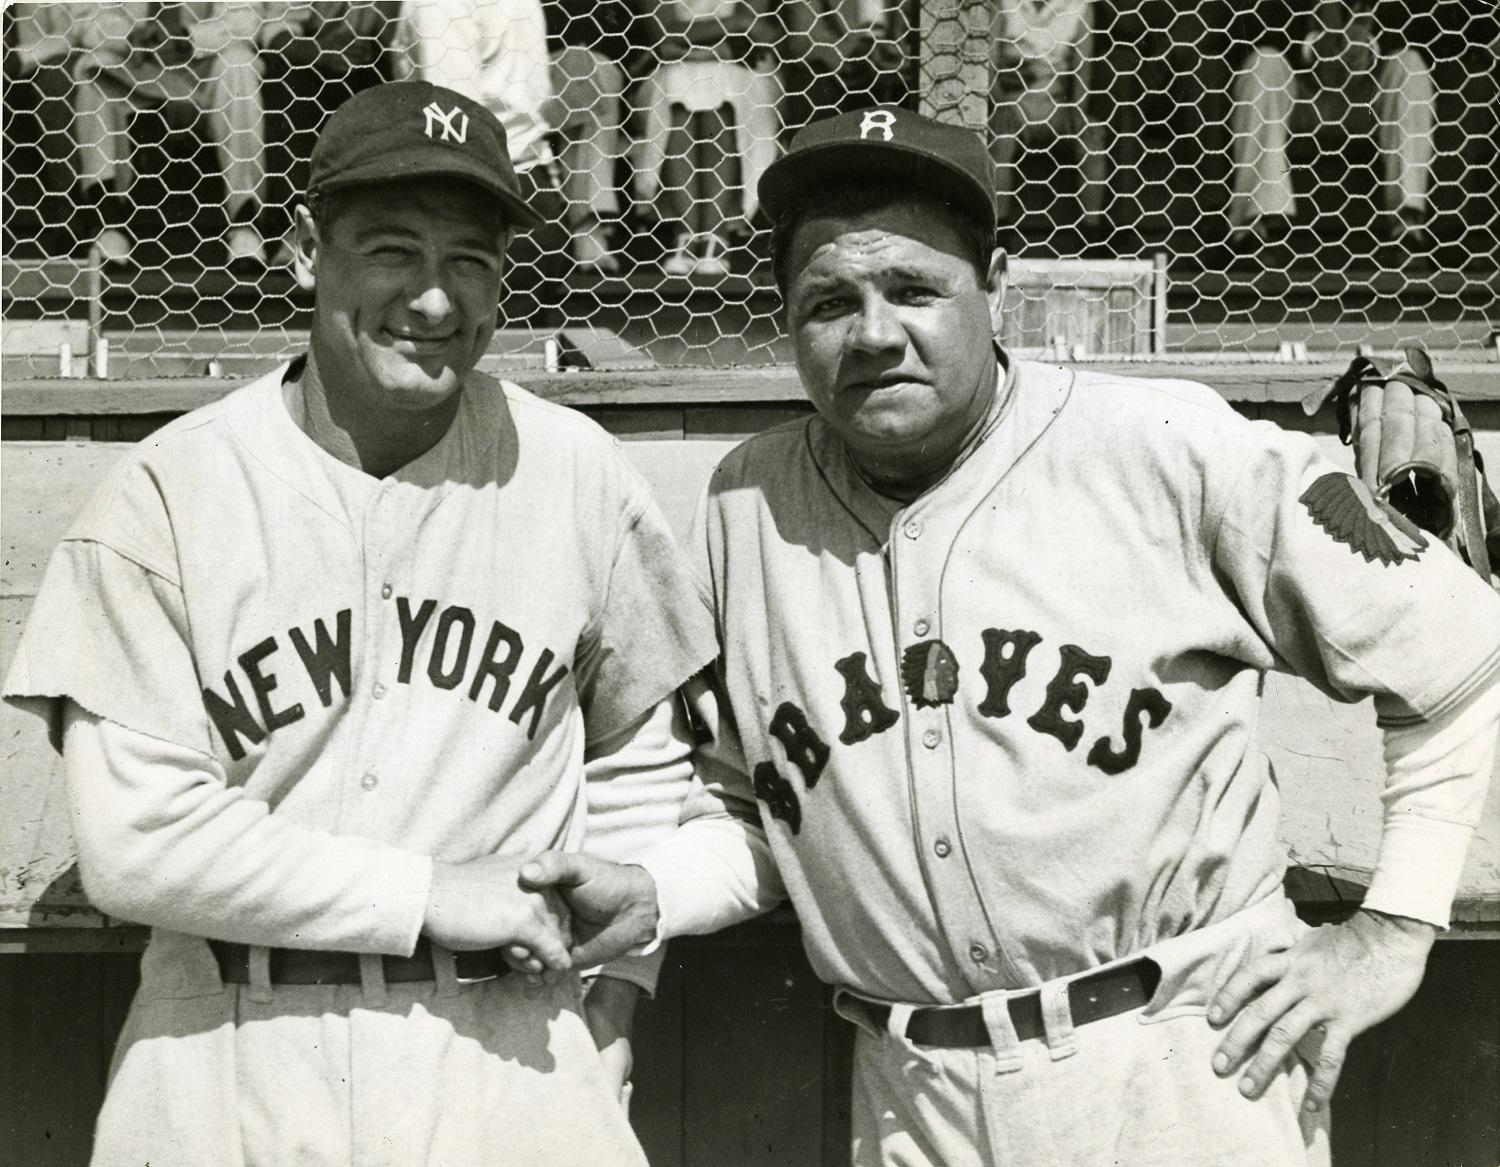 Baseball   Babe Ruth   Images   PSA AutographFacts    Professional Sports Authenticator Ruth also famously delivered for young Johnny Sylvester  who recovered from  his ilness after The